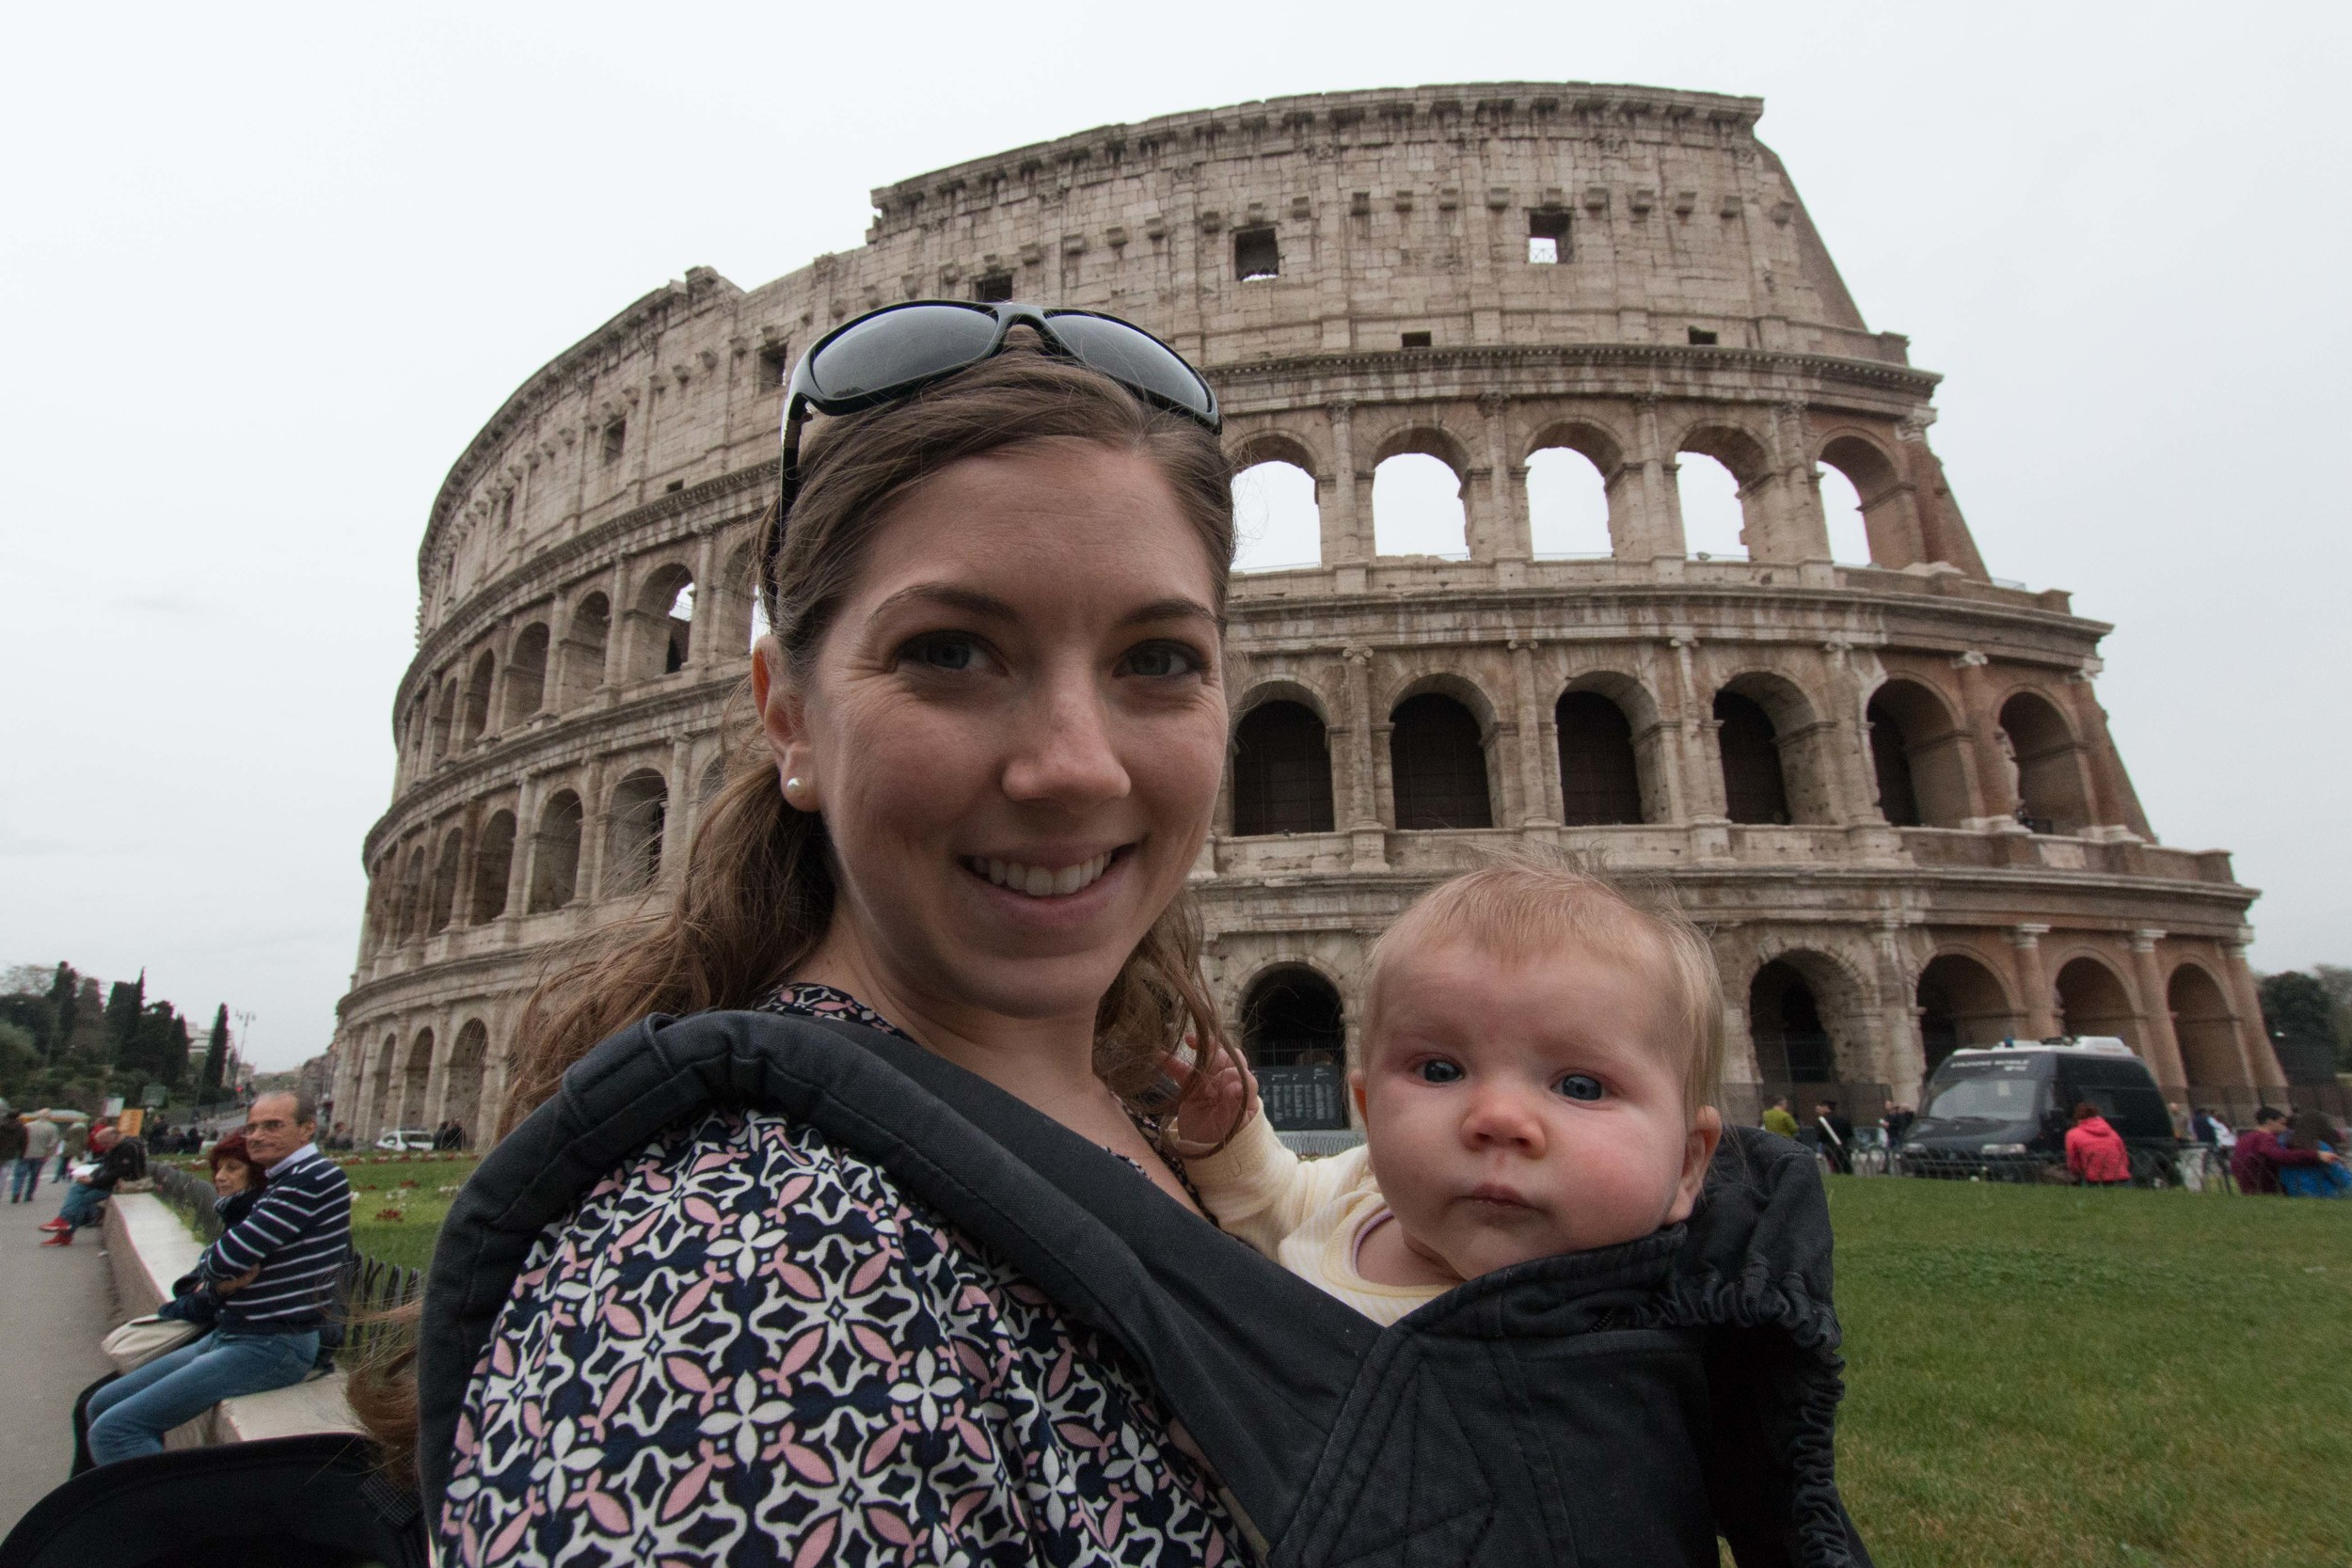 Evelyn and I in front of the Colosseum